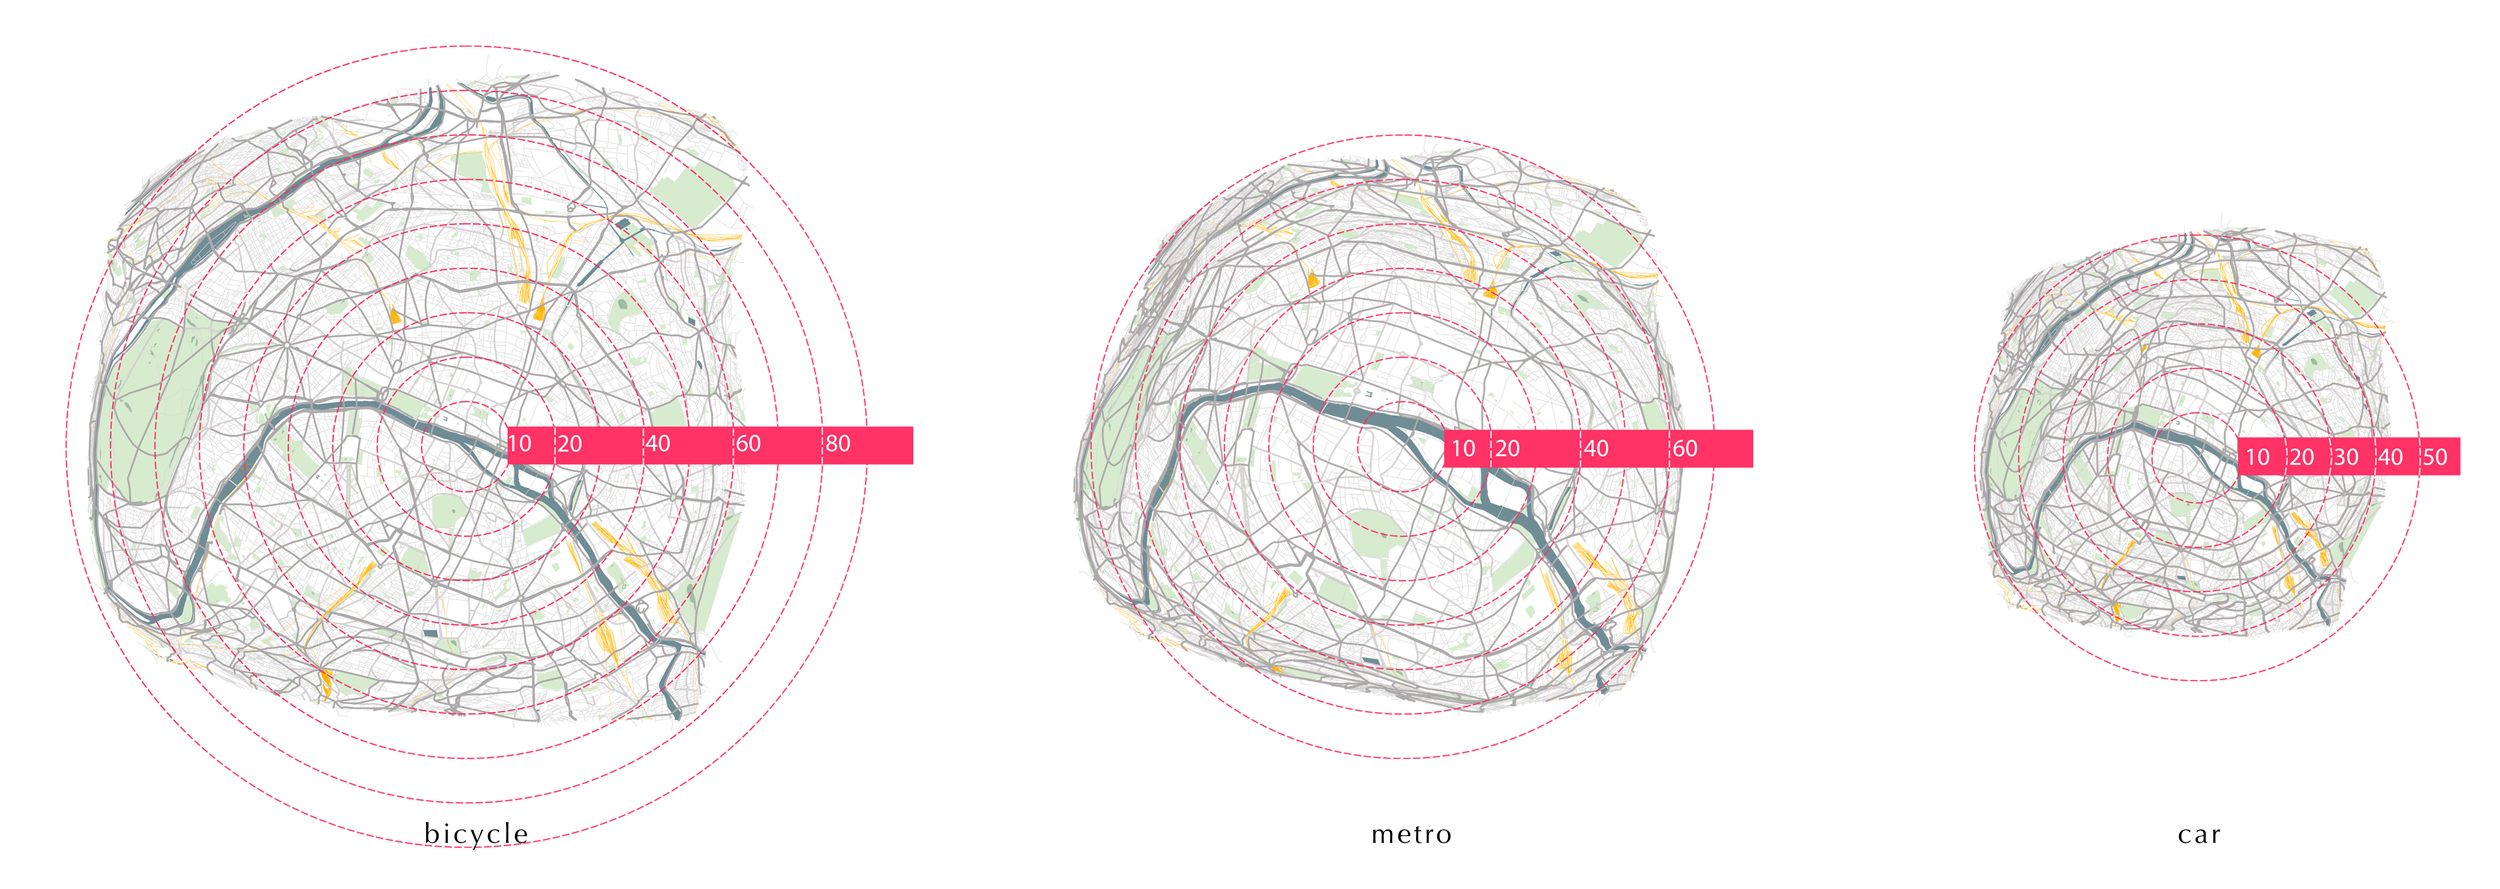 Isochronic Map Of Paris, 3 Transportations Comparison